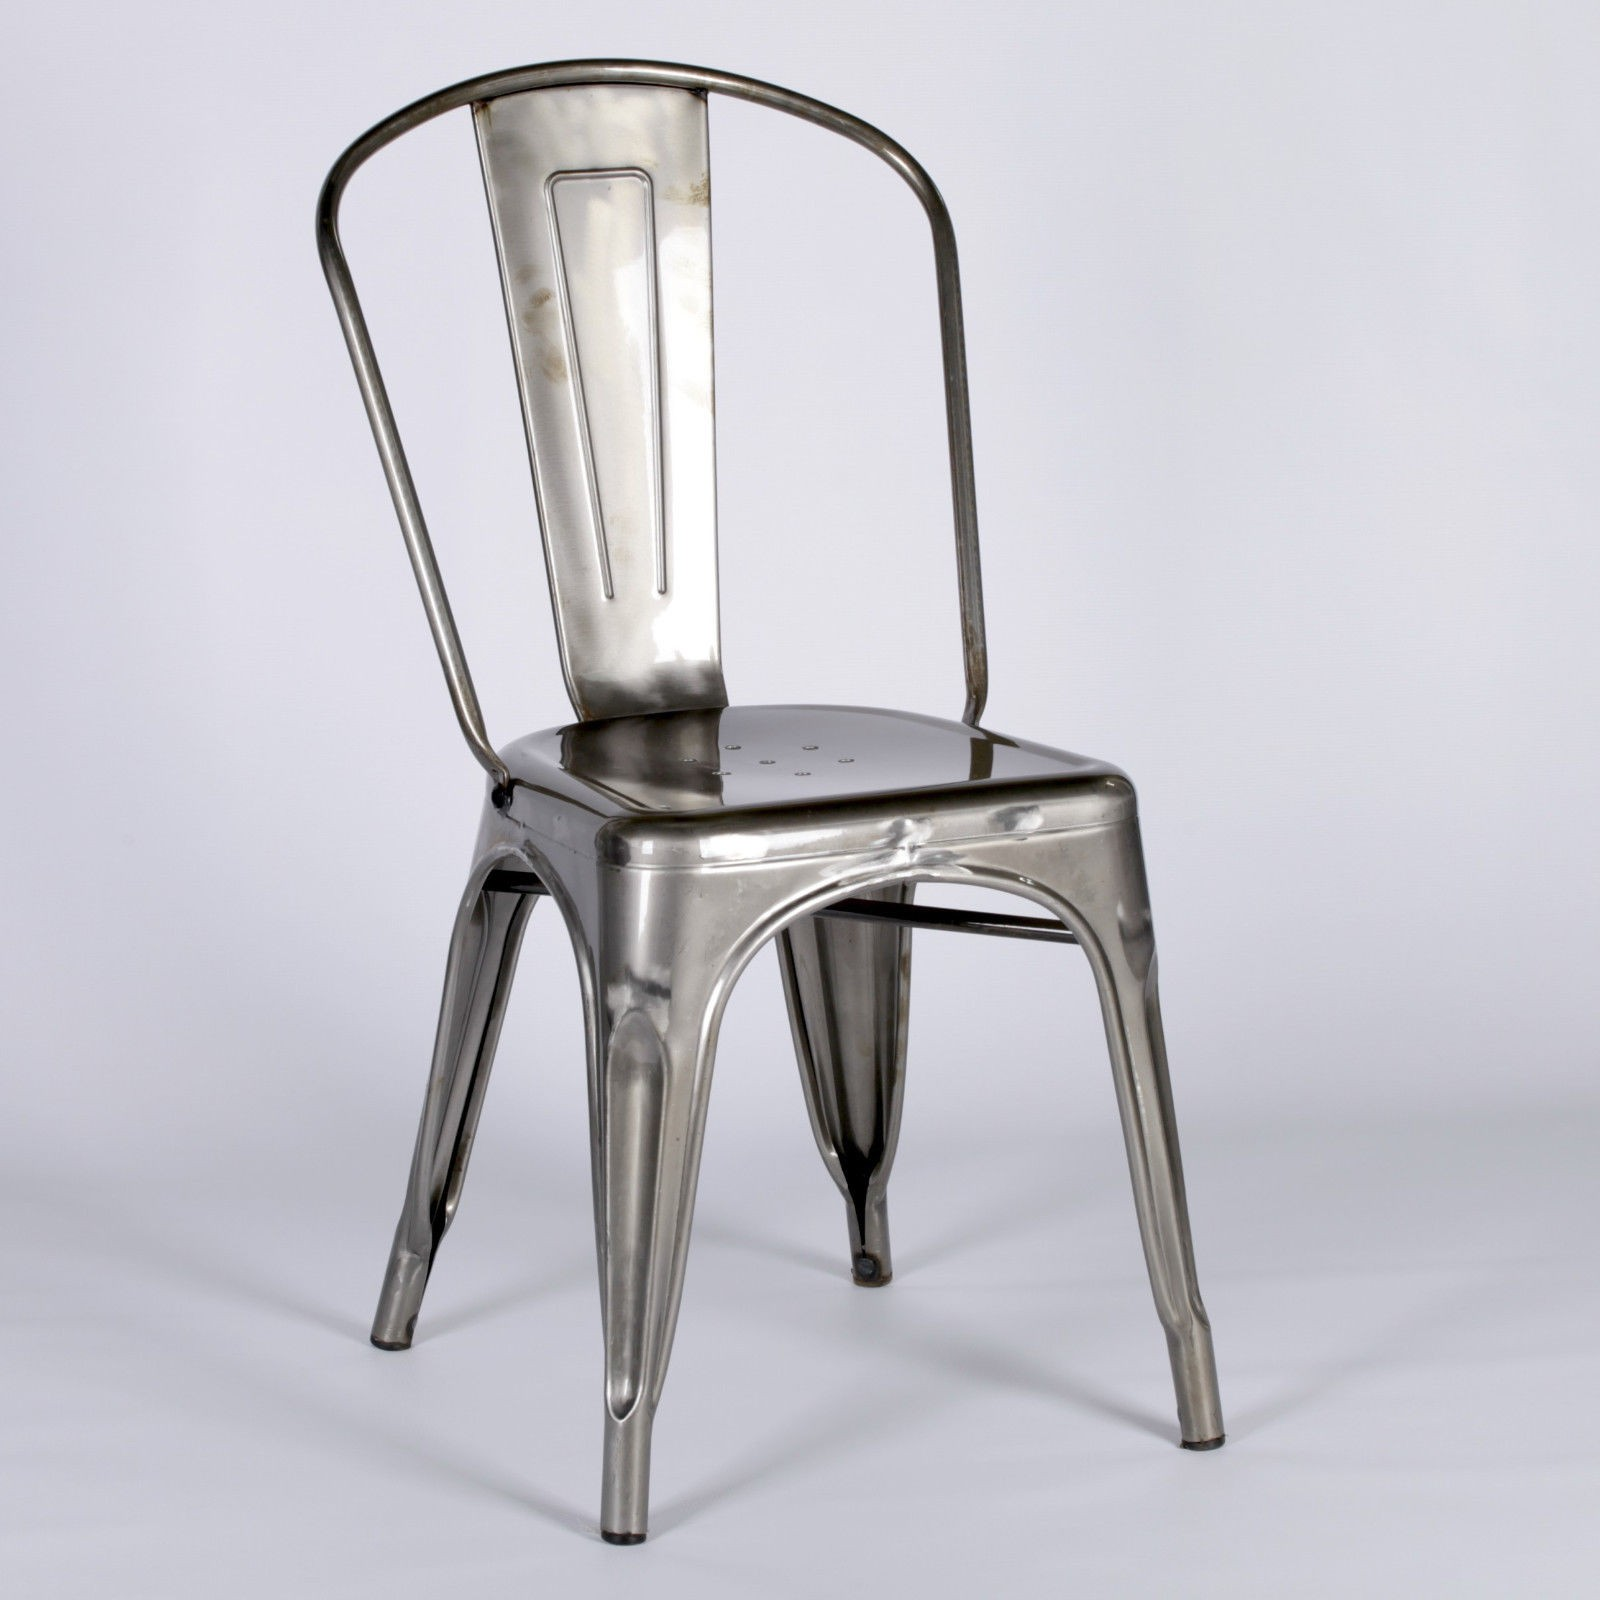 Industrial Look Chairs Vintage Style Metal Steel Industrial Cafe Dining Chair